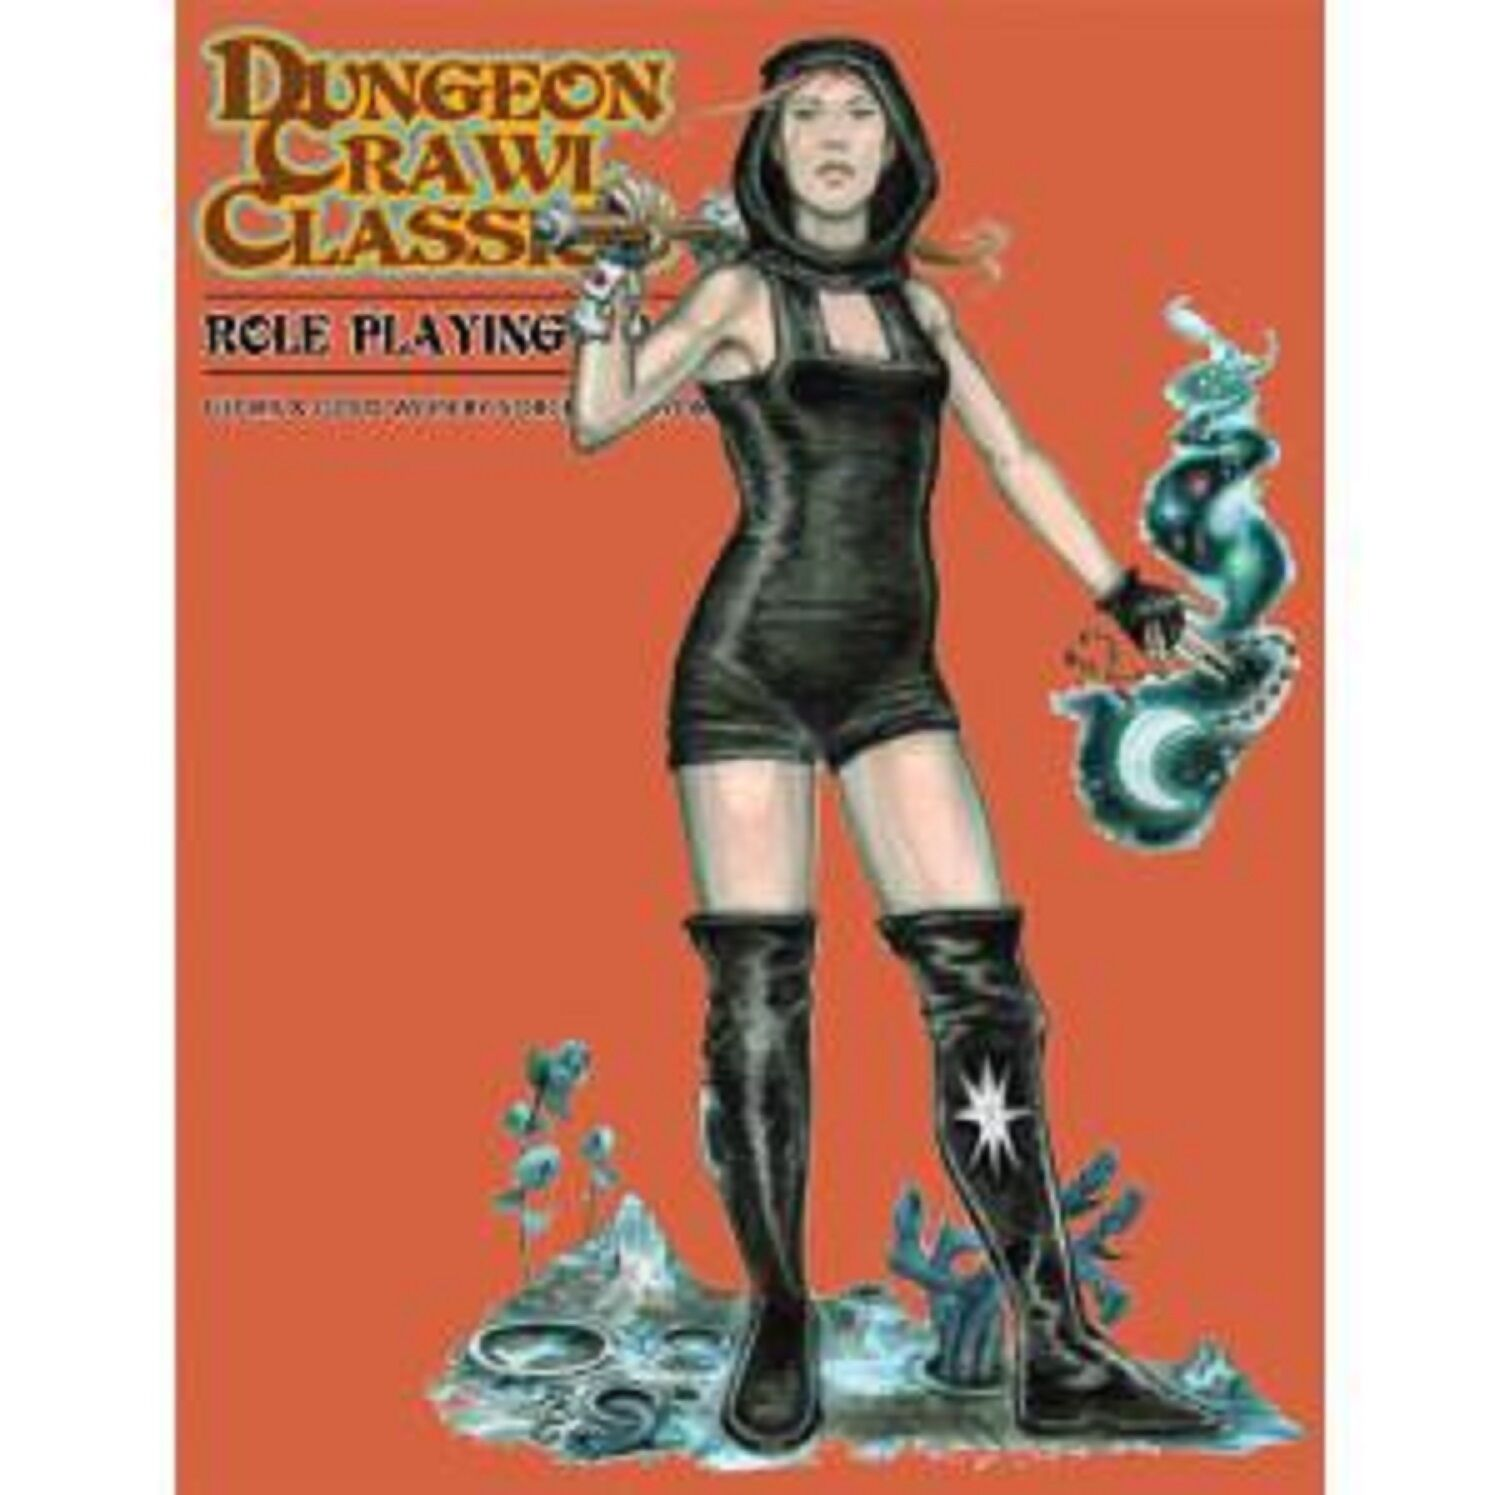 Dungeon Crawl Classics RPG Rulebook (Peter Mullen Slipcover Edition) GMG5070C